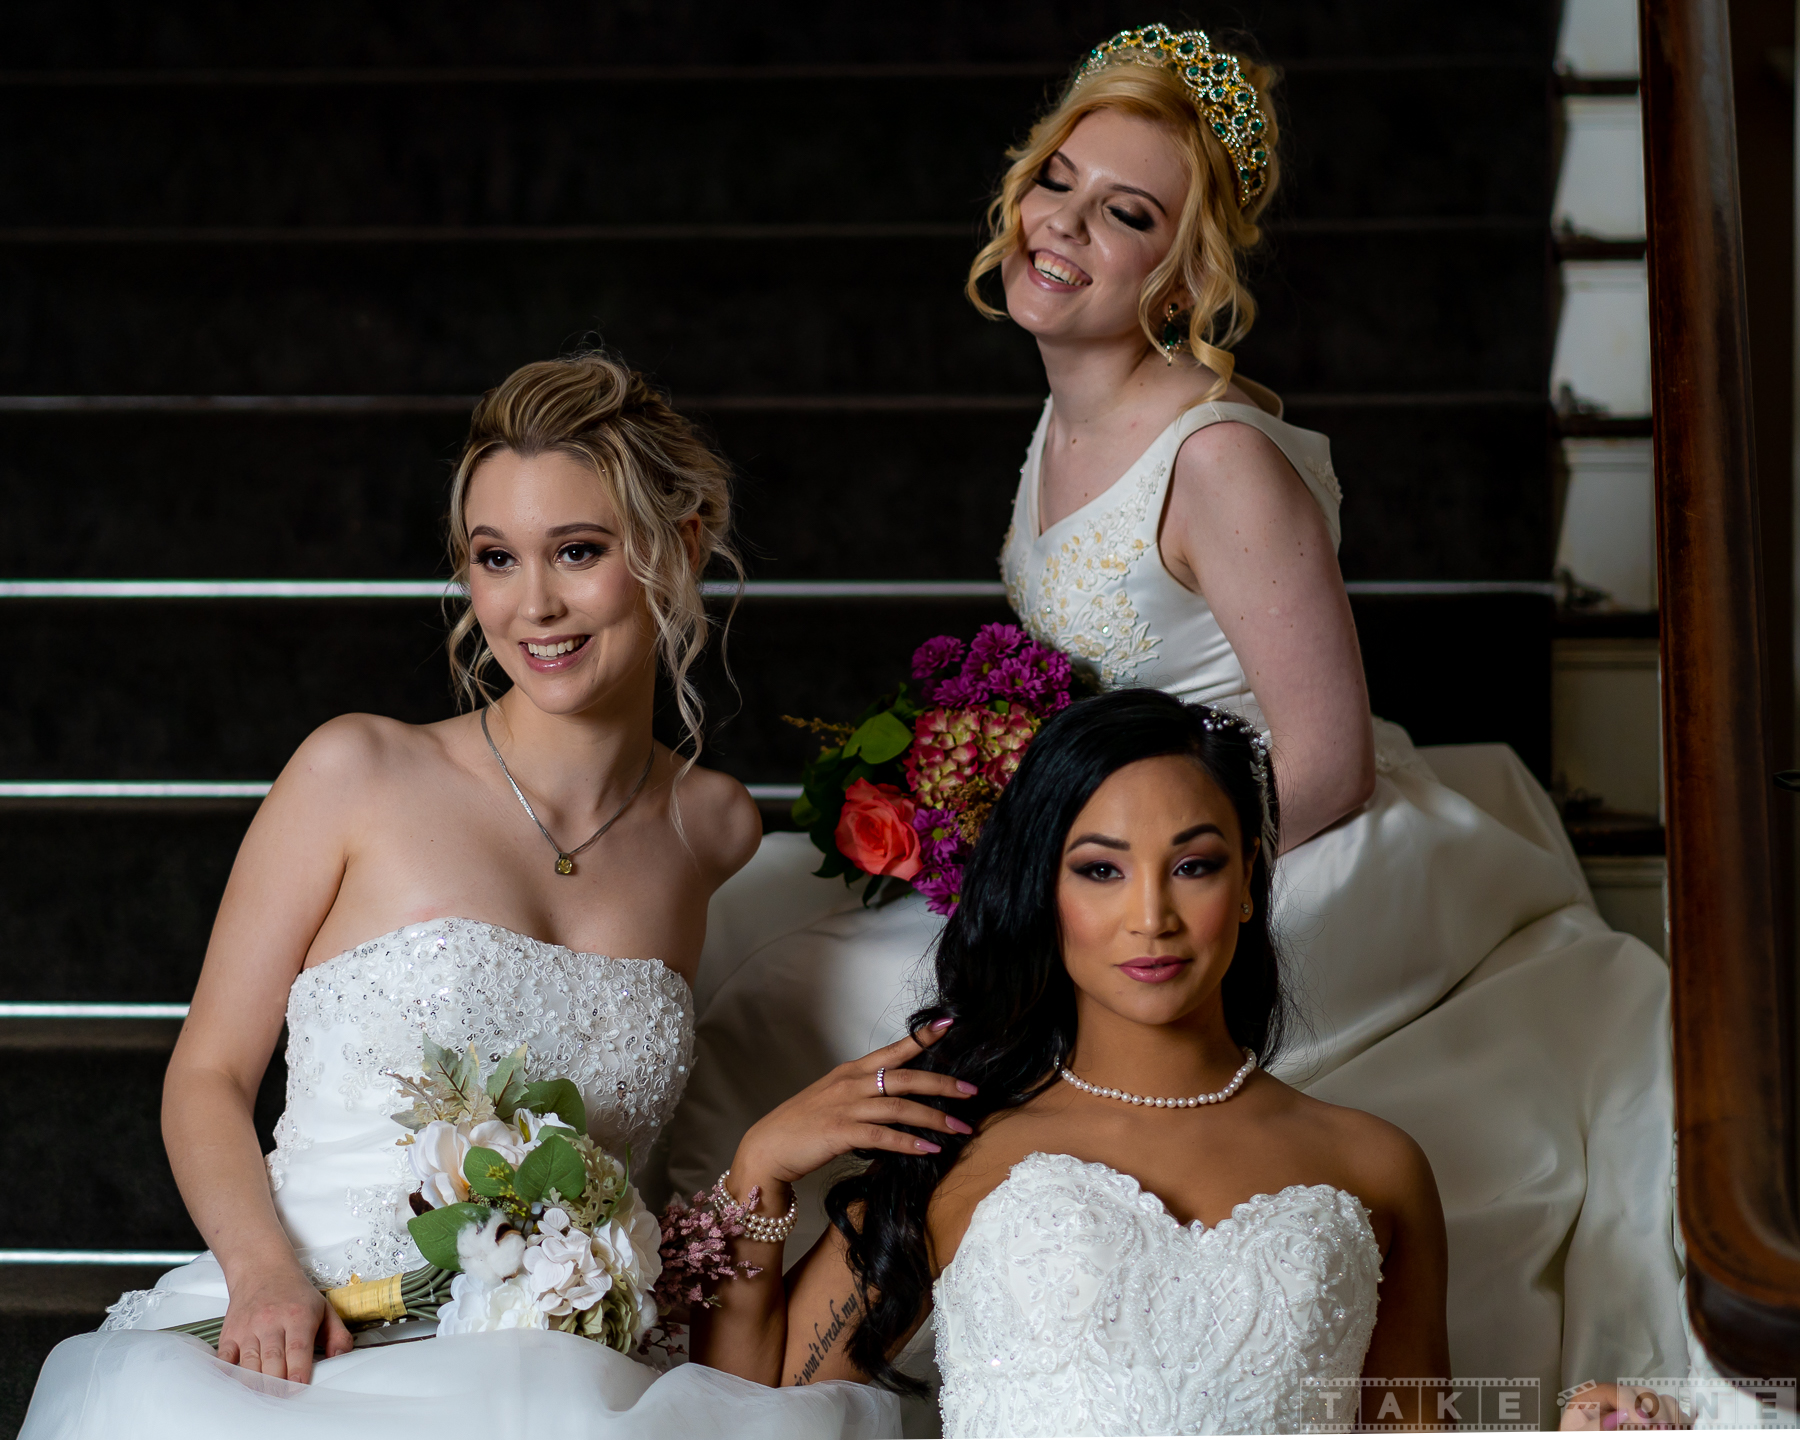 Bridal.shoot-0456